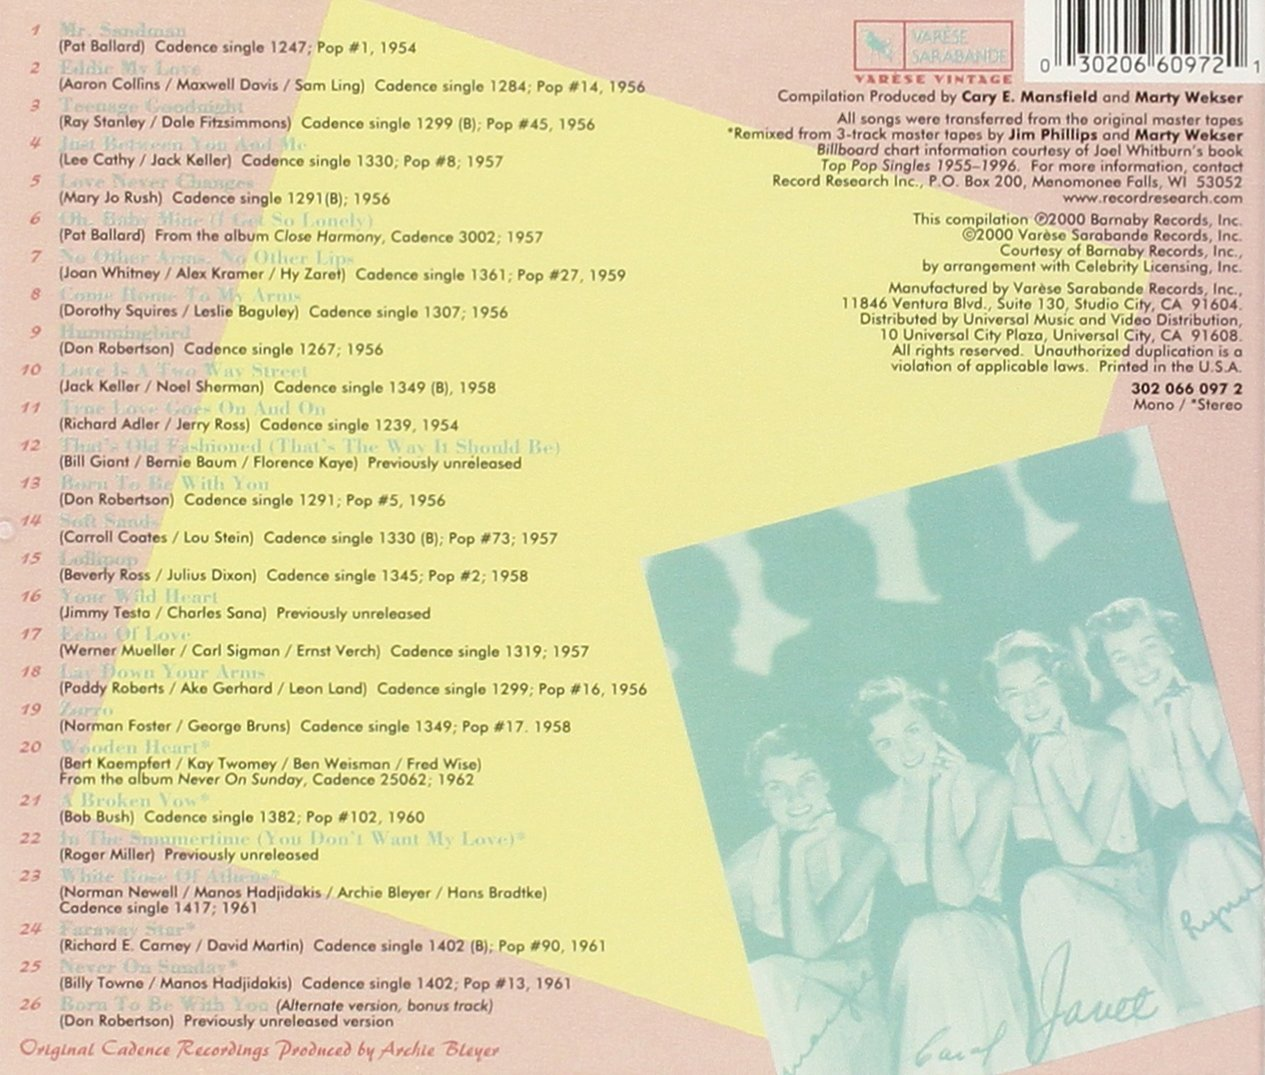 The Chordettes: 25 All-Time Greatest Recordings by CHORDETTES